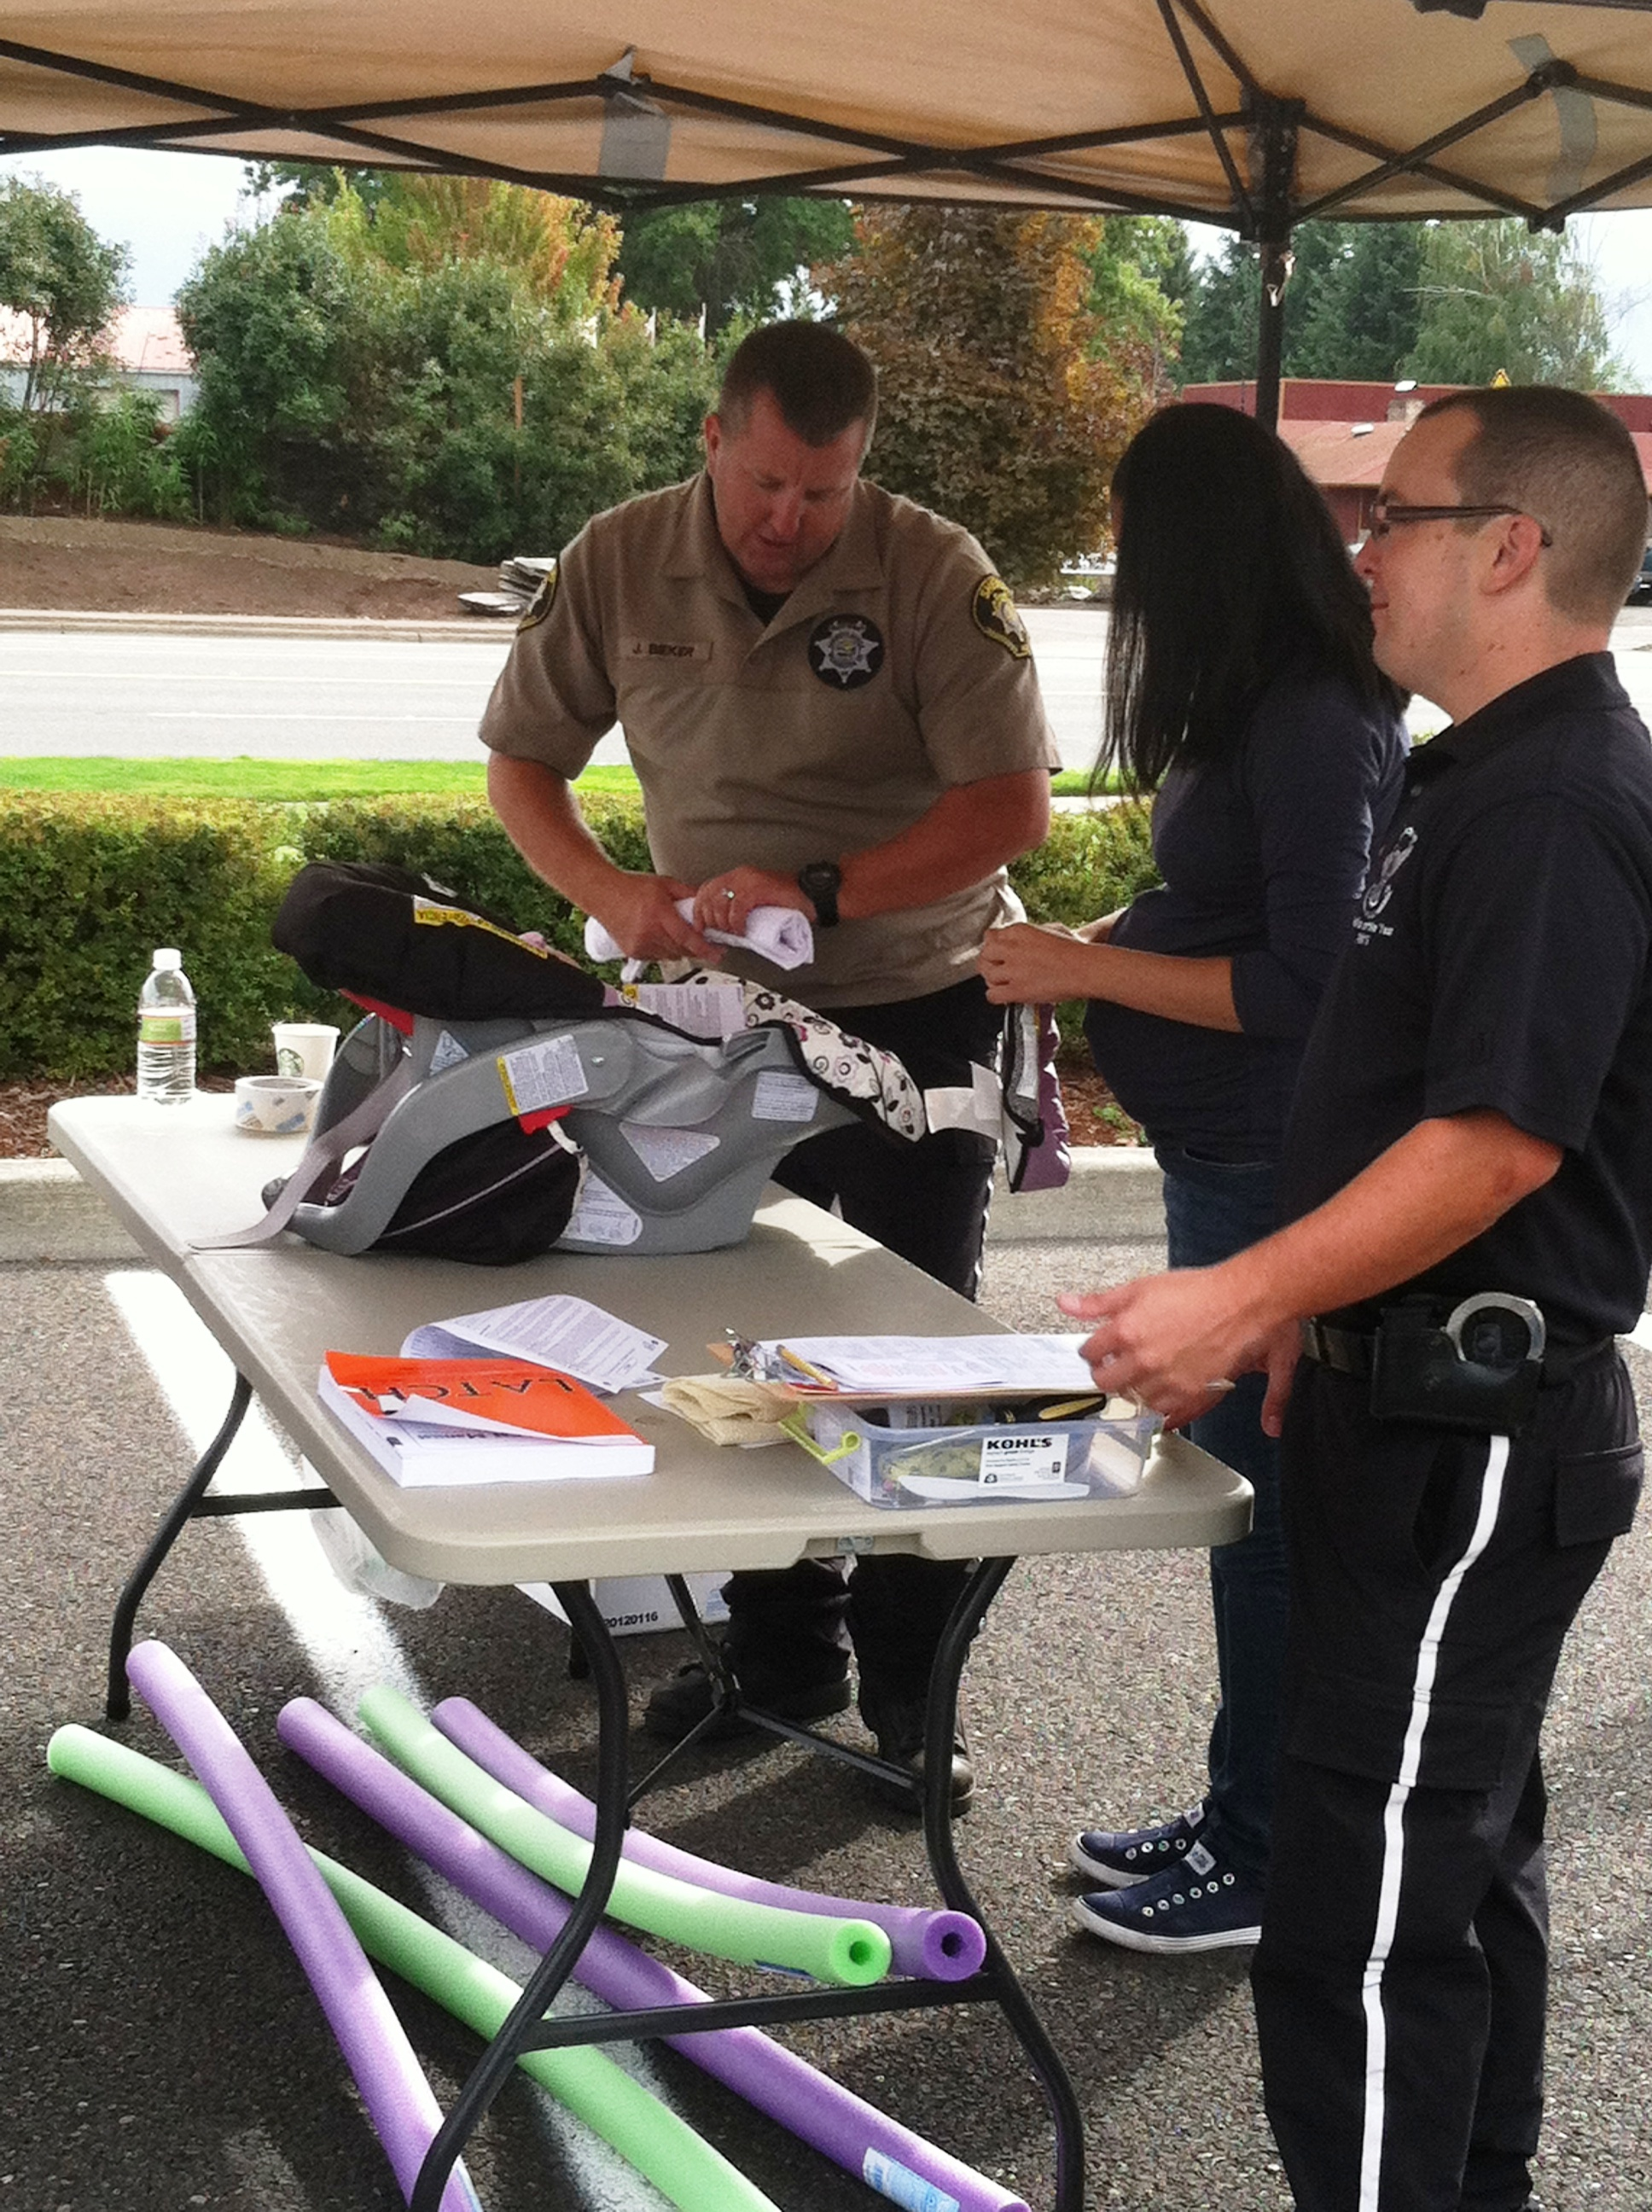 Safe Kids Coalitions Host Child Safety Seat Check Up Events And Provide New Car Seats To Families In Need A 50 Donation Will